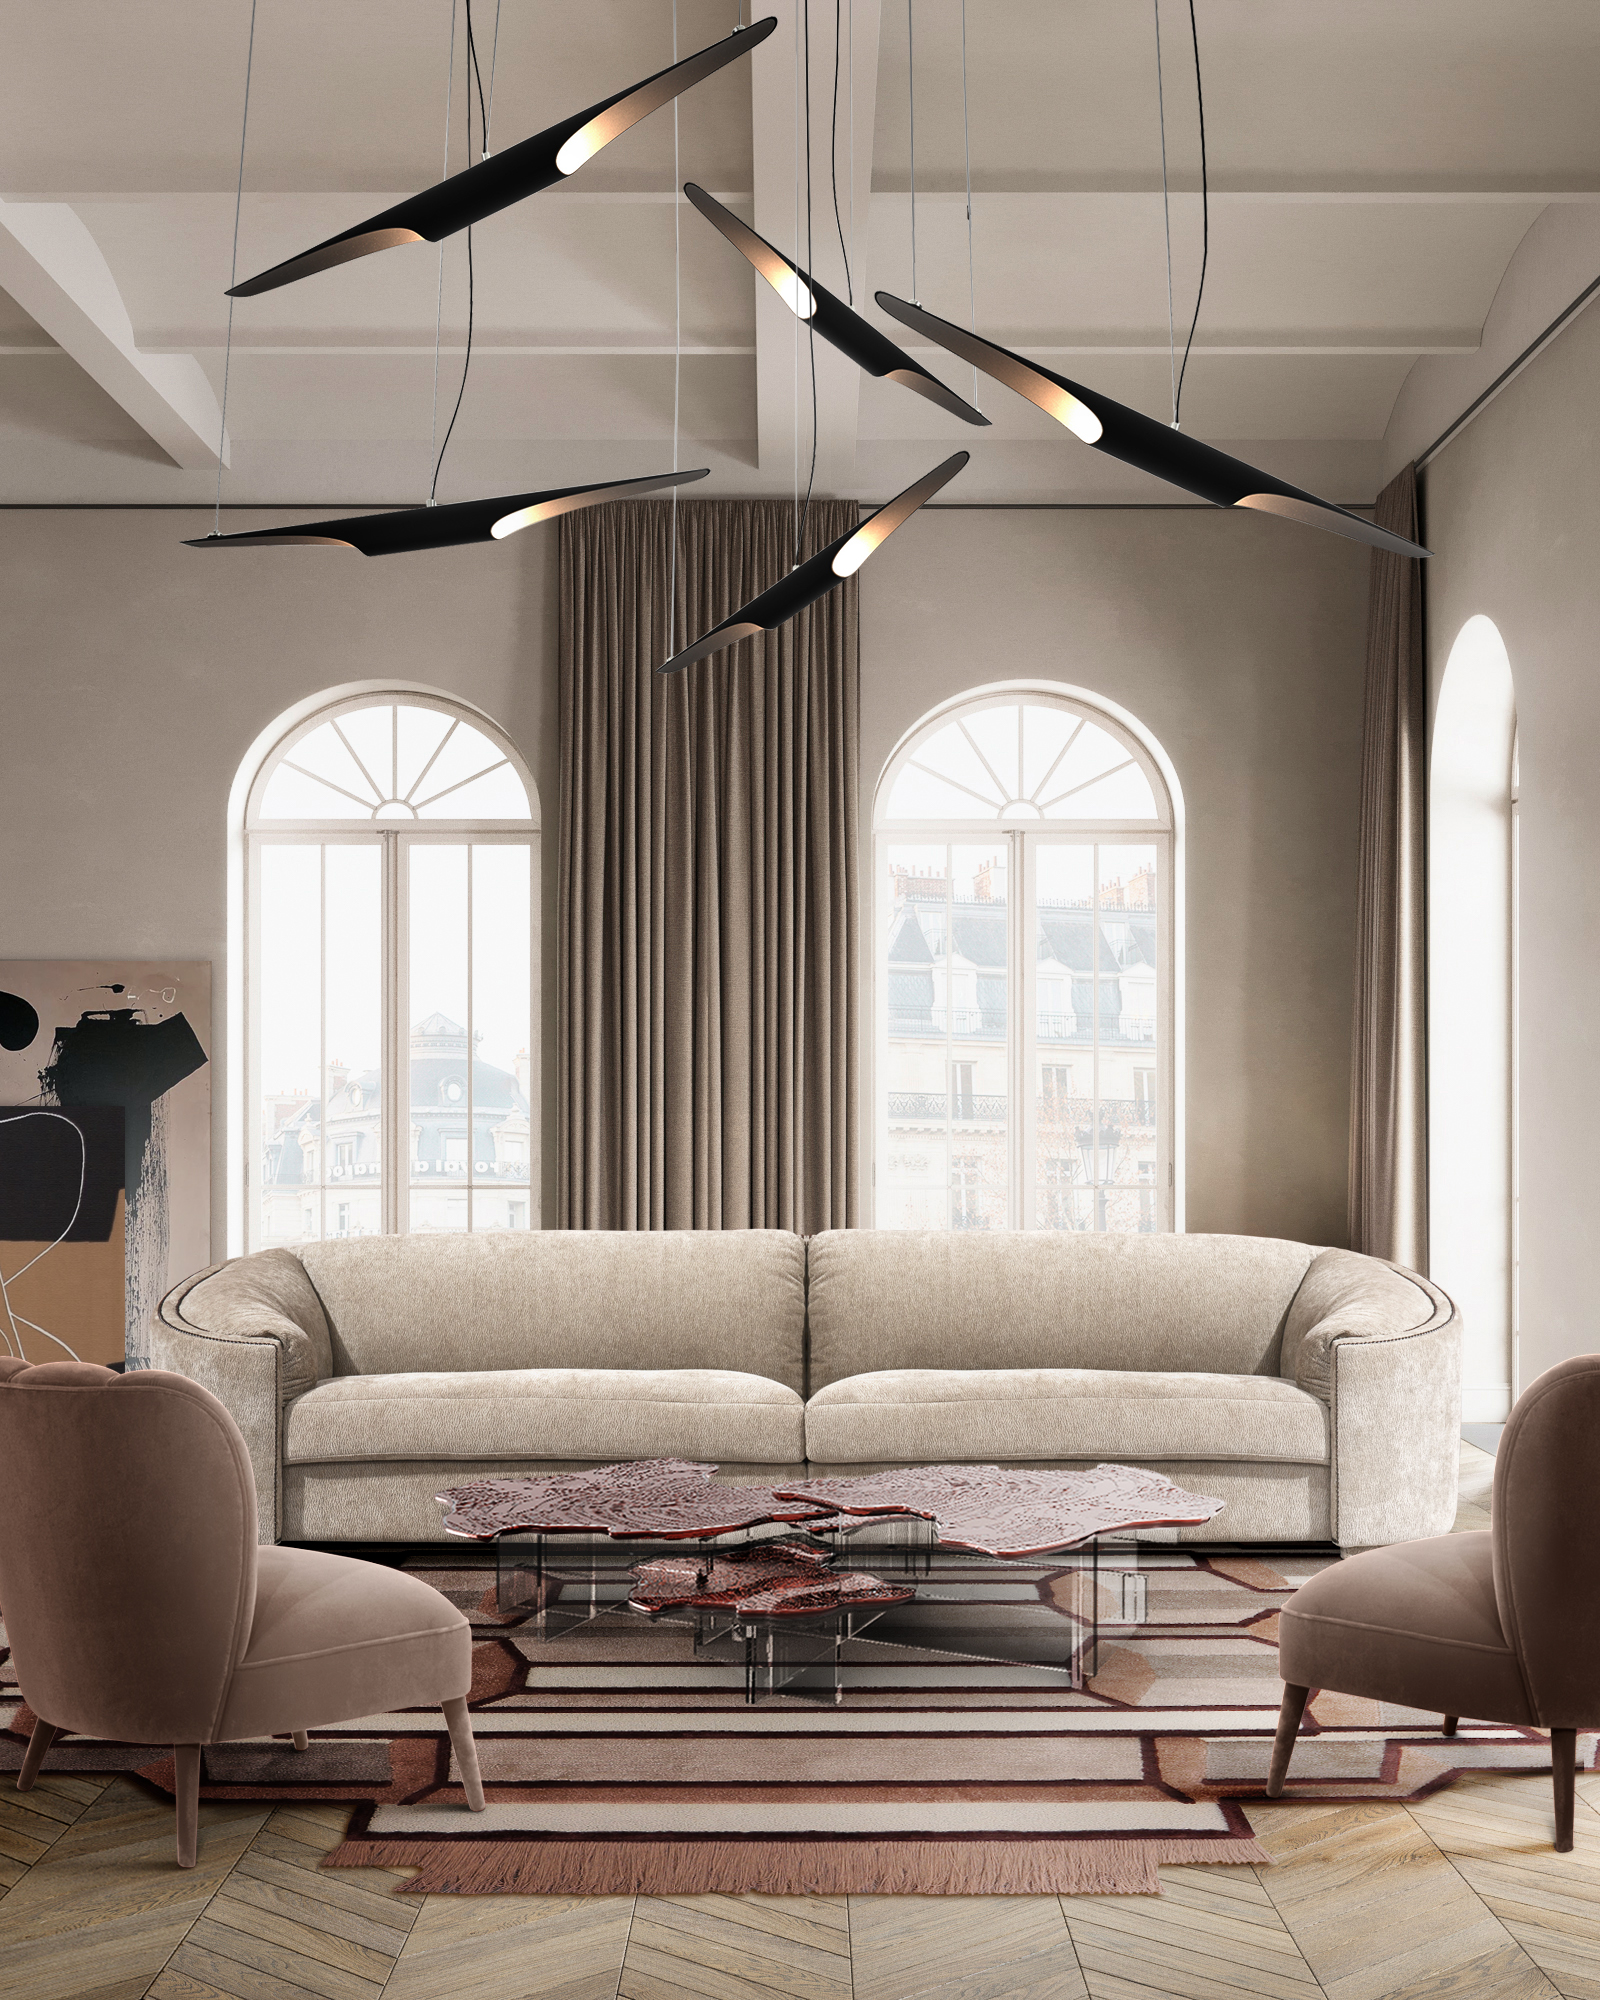 Summer Sales: These 6 Beautiful Lighting Pieces are The Epitome of Modern Mid-Century Style! lighting pieces Summer Sales: These 6 Beautiful Lighting Pieces are The Epitome of Modern Mid-Century Style! 2